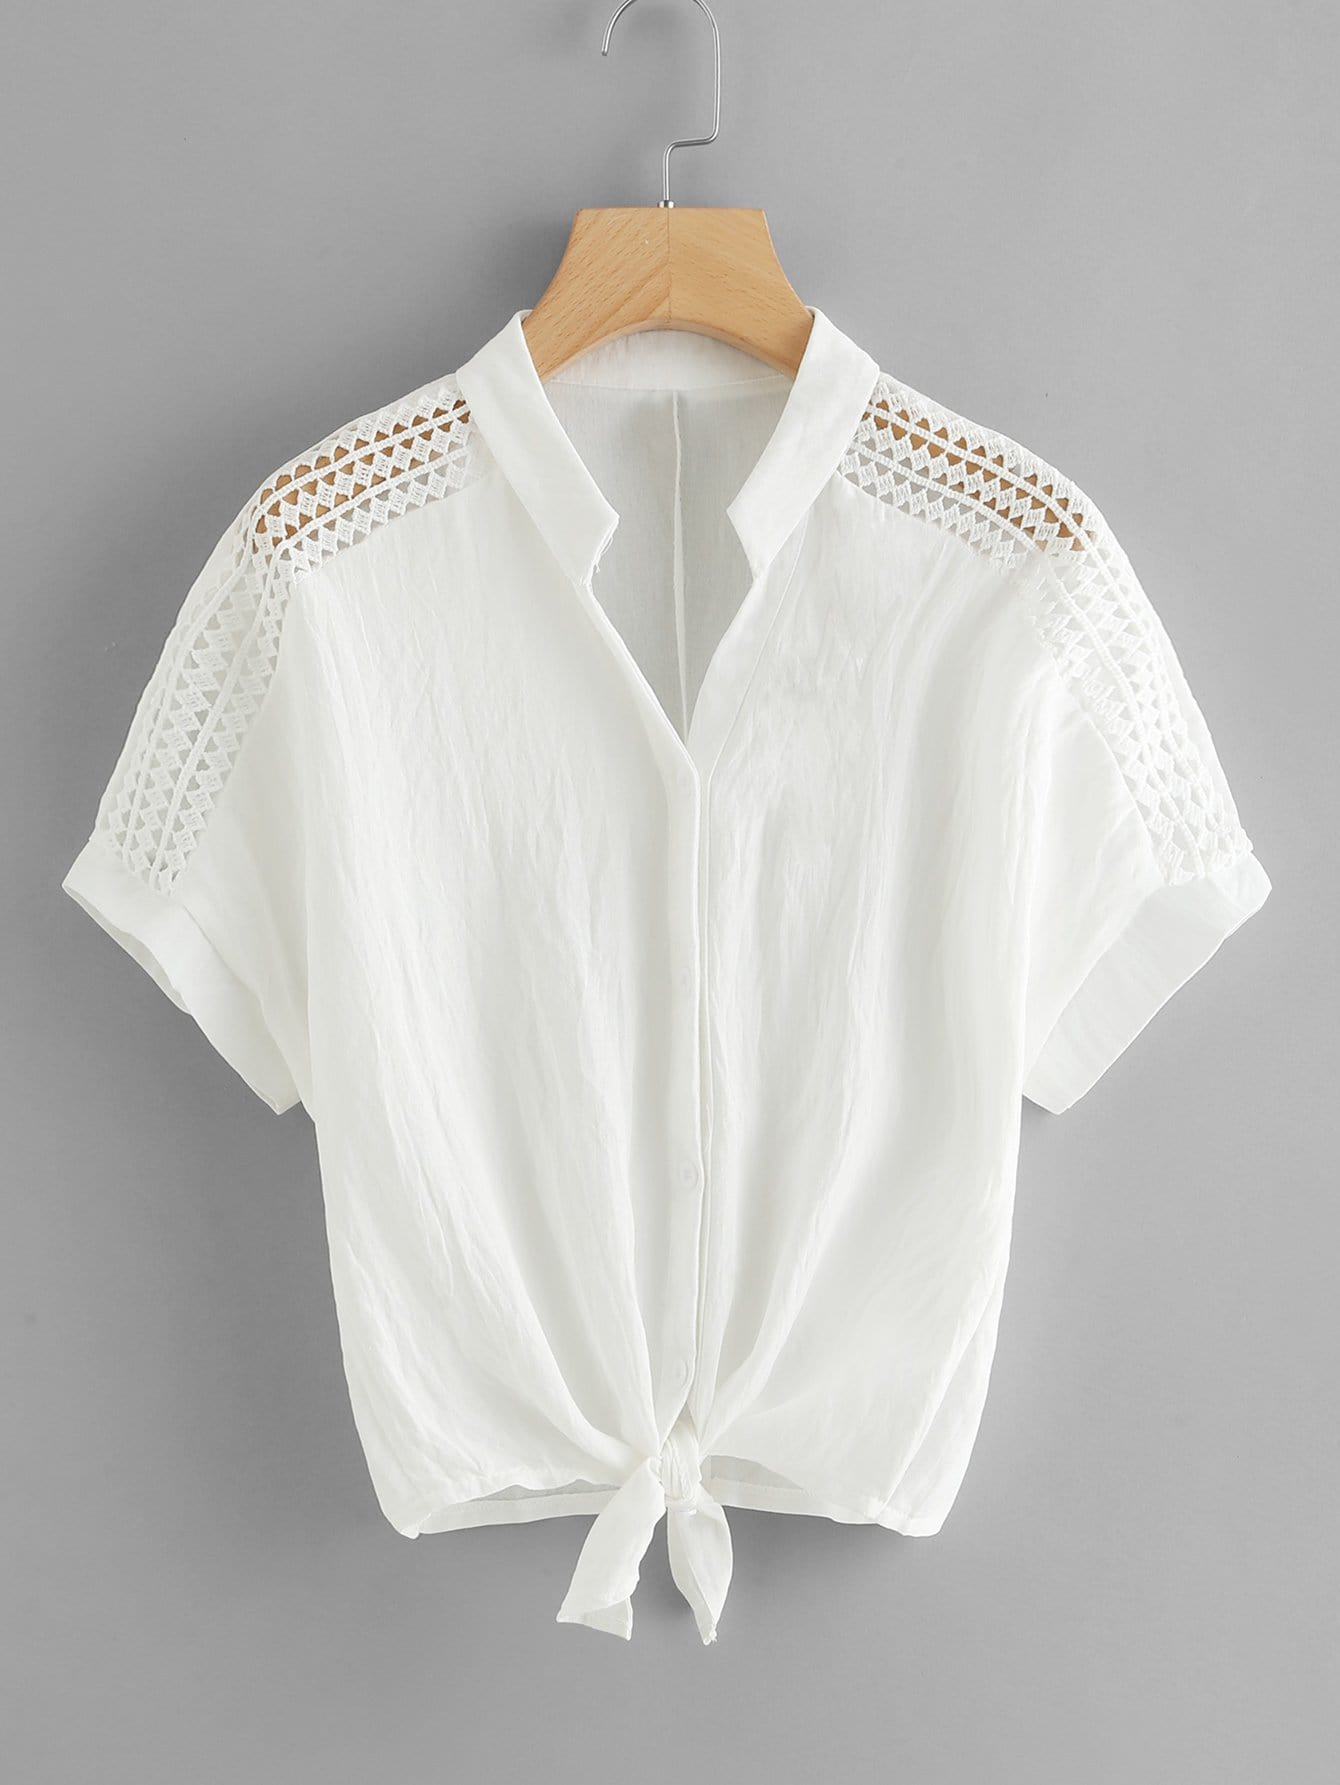 Hollow Out Crochet Panel Knot Front Blouse hollow out crochet panel blouse